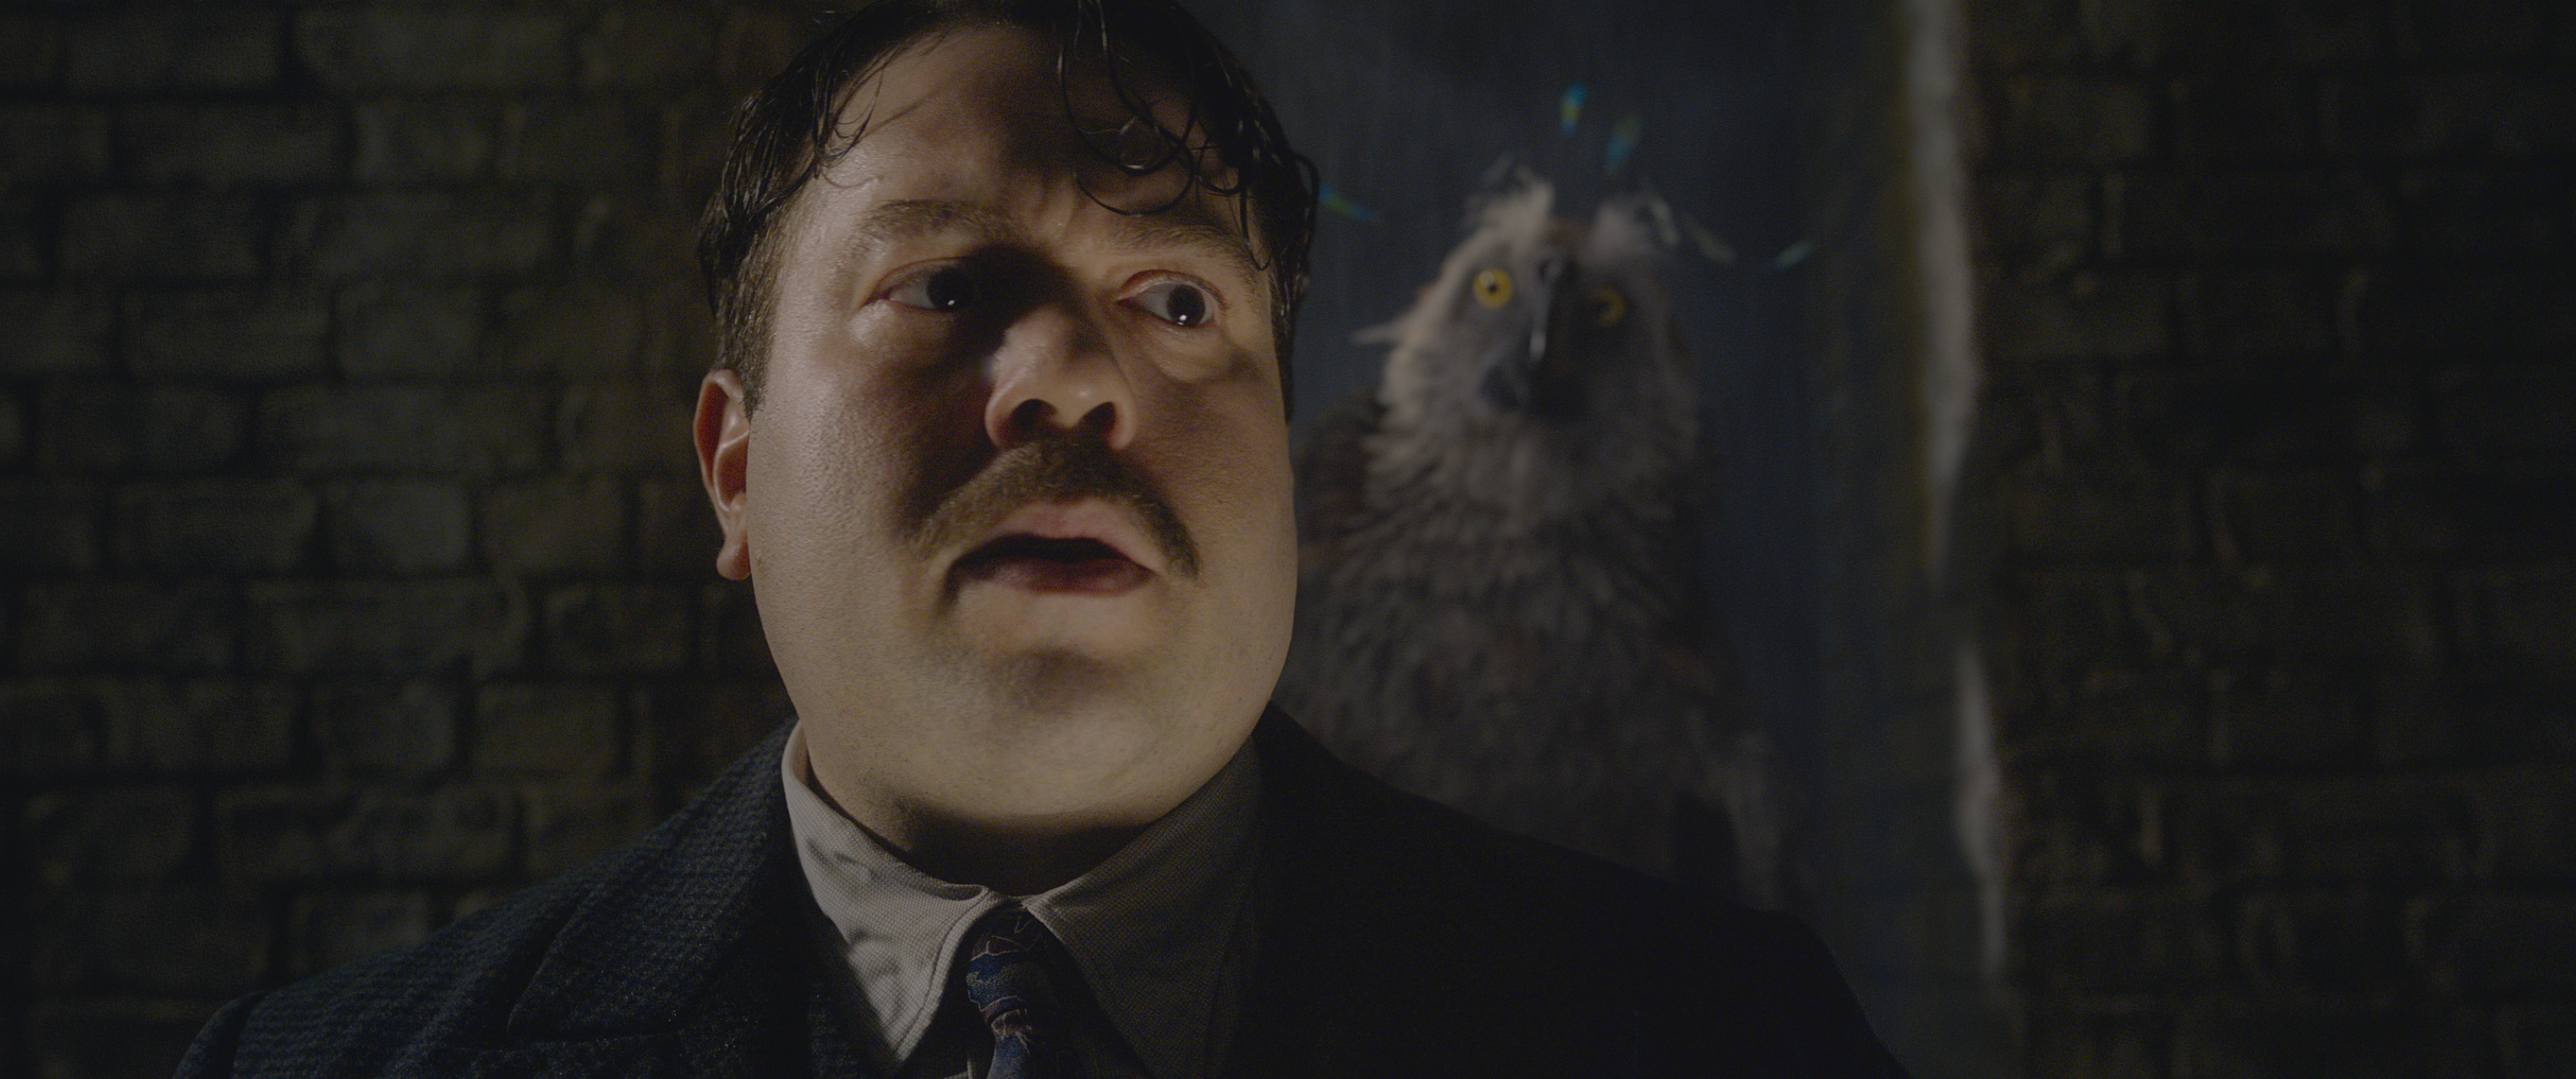 Dan Fogler as Jacob Kowalski